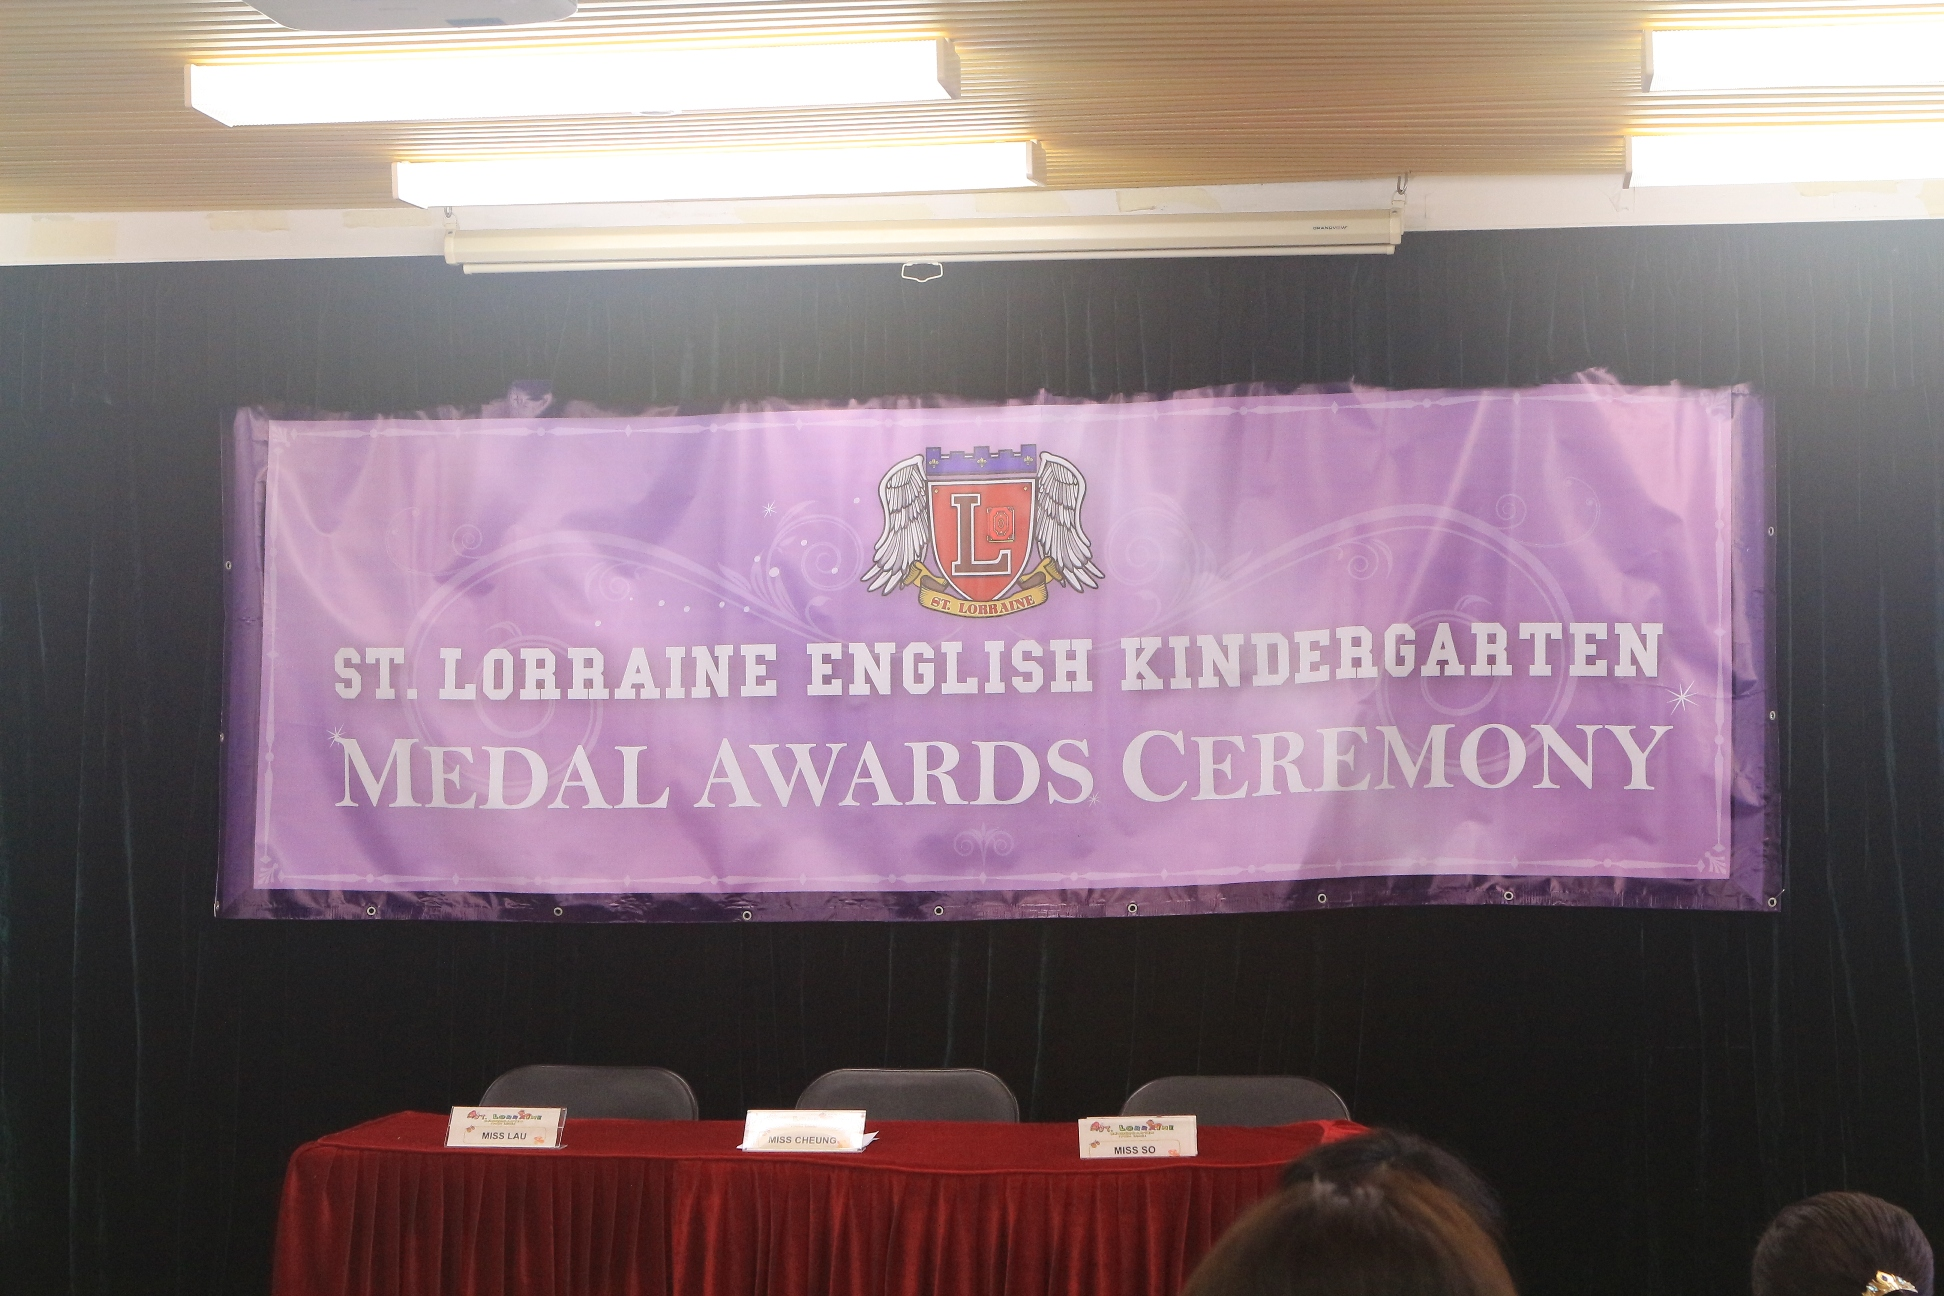 Ste Lorraine Awards Ceremony